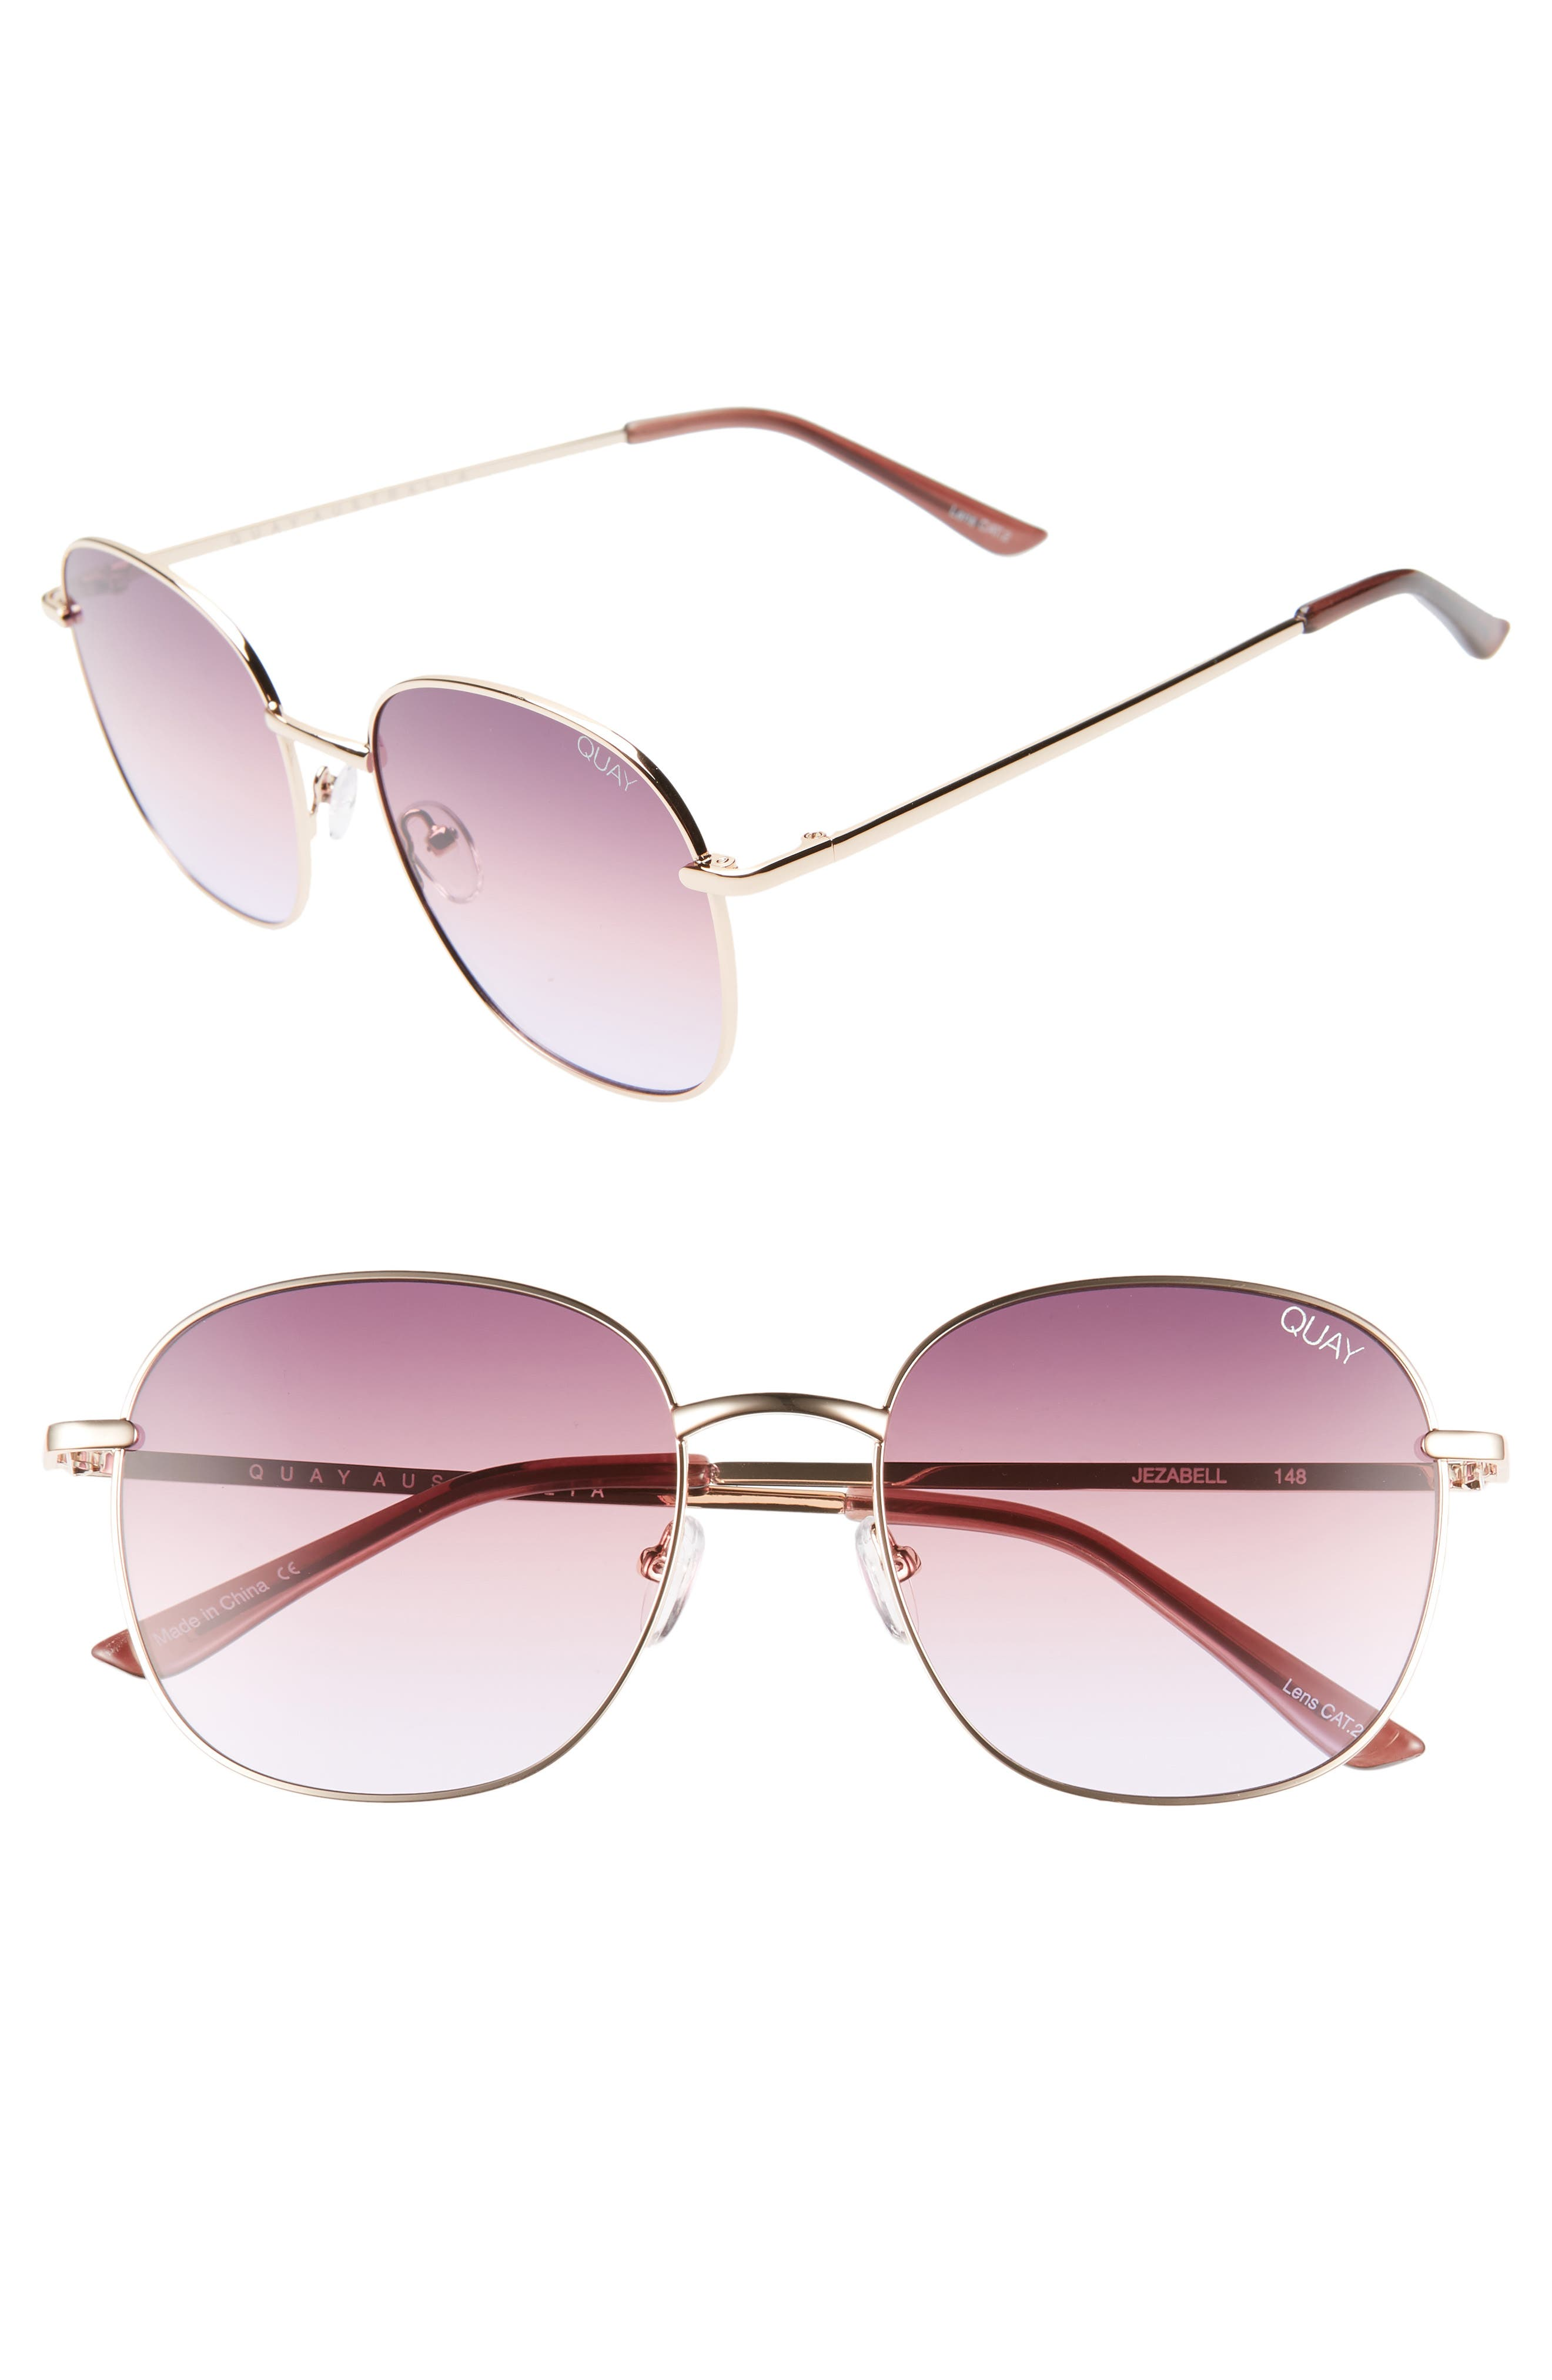 Jezabell 57mm Round Sunglasses,                             Main thumbnail 1, color,                             ROSE / PURPLE PINK FADE